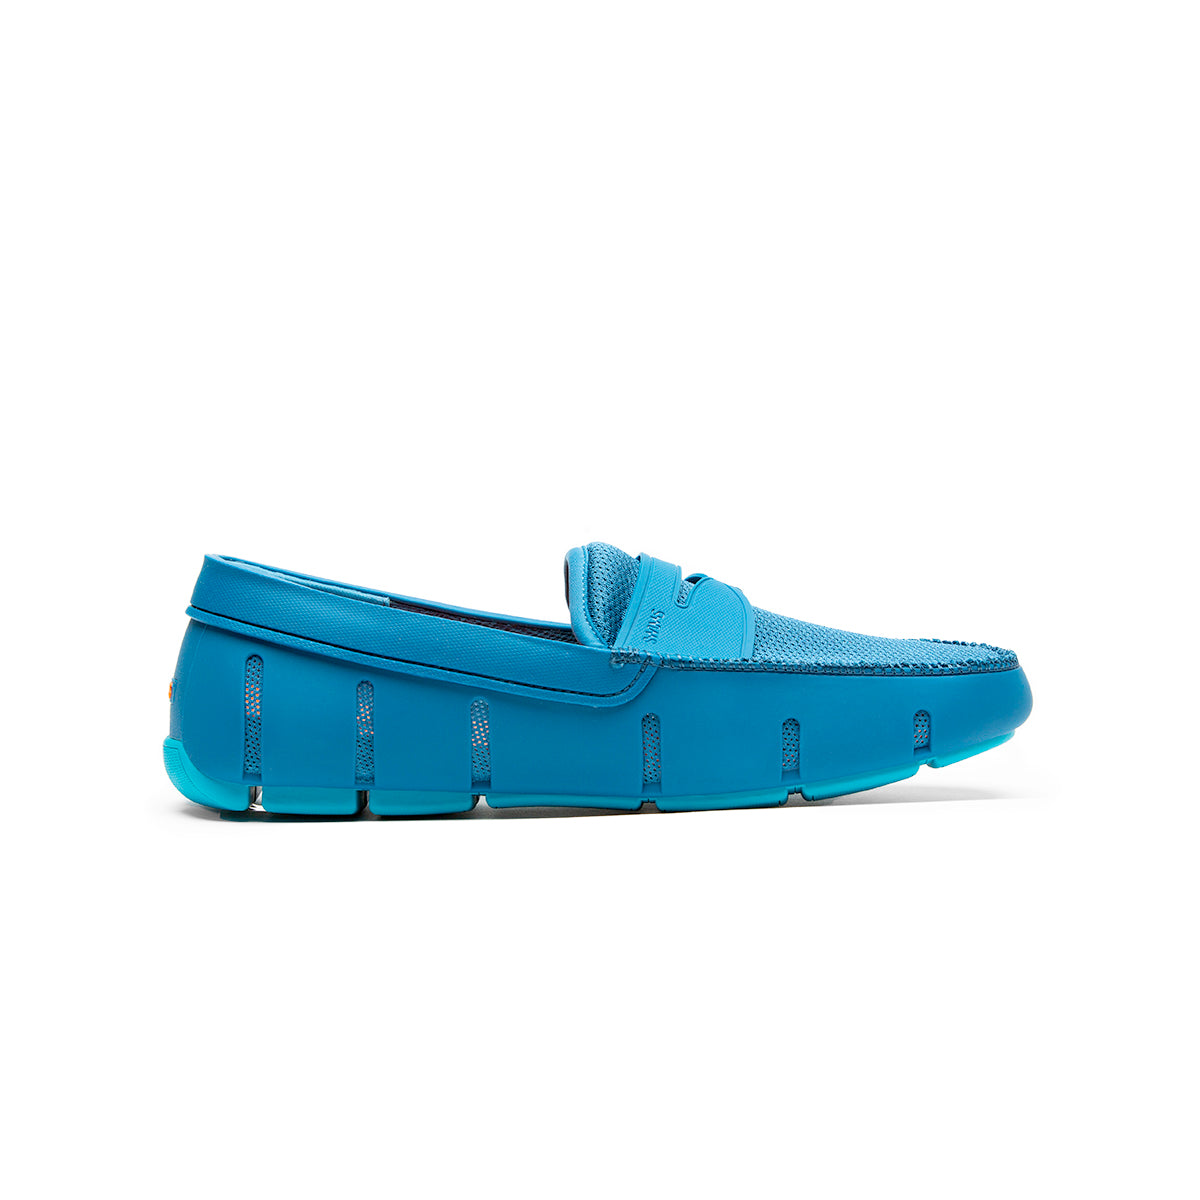 Penny Loafer - background::white,variant::blue